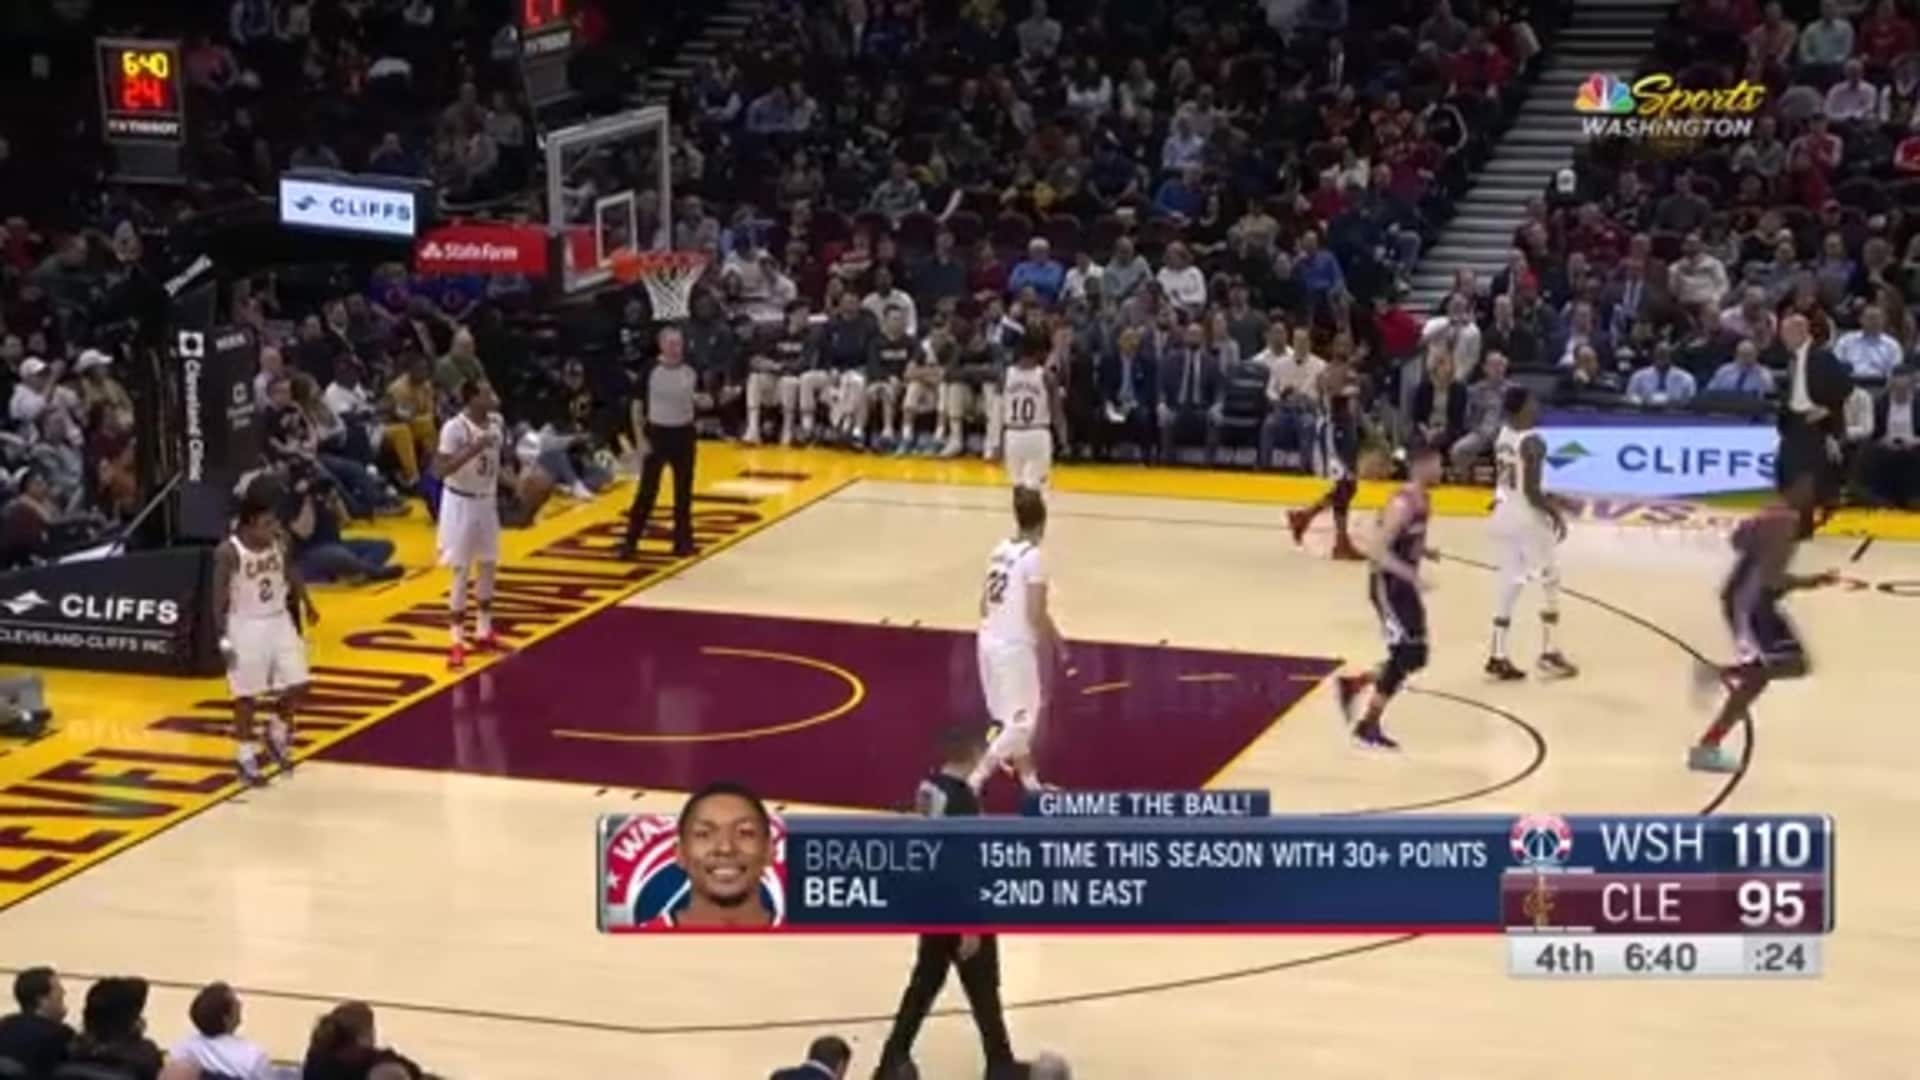 Highlights: Wizards vs. Cavaliers - 1/23/20